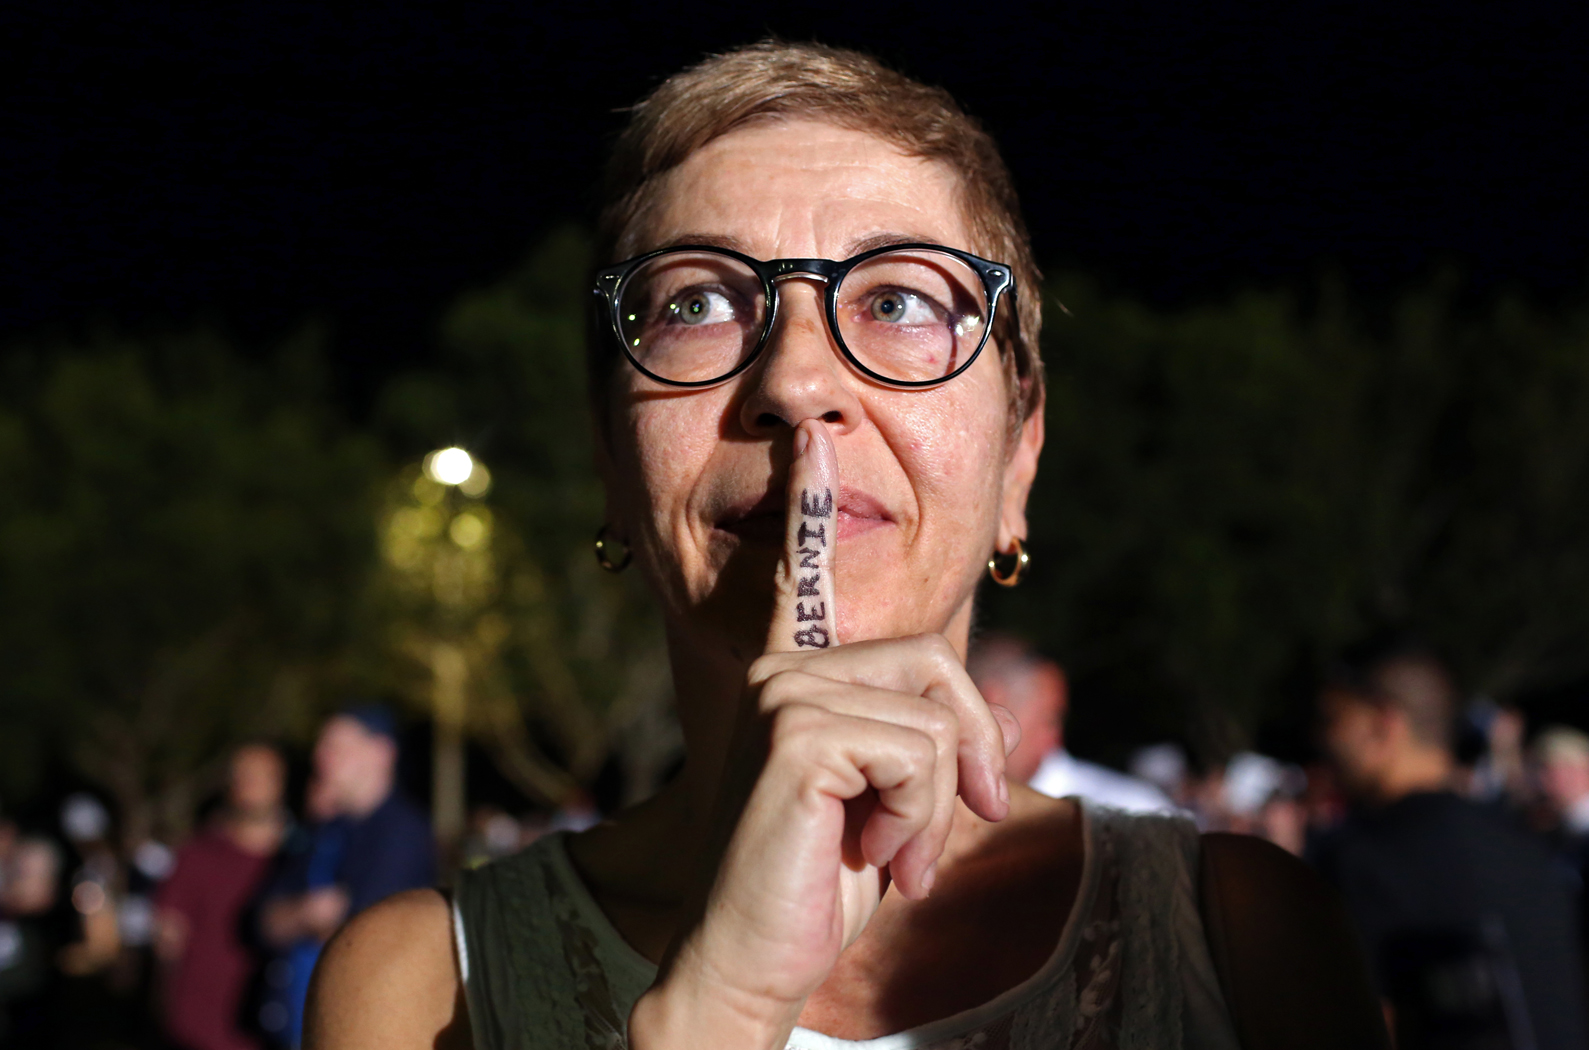 Pam Becker, 51, poses for a portrait with the name of U.S. Presidential candidate Bernie Sanders (I-VT) written on her finger at a rally for candidate Donald Trump (R-NY) at Sunset Cove Amphitheater in Boca Raton, FL, on March 13, 2016. Becker, a Democrat, says of her attendance to a Trump rally: {quote}It's hard to argue against someone if I don't have the knowledge. Simply calling people names is not an argument.{quote} (For TIME magazine)